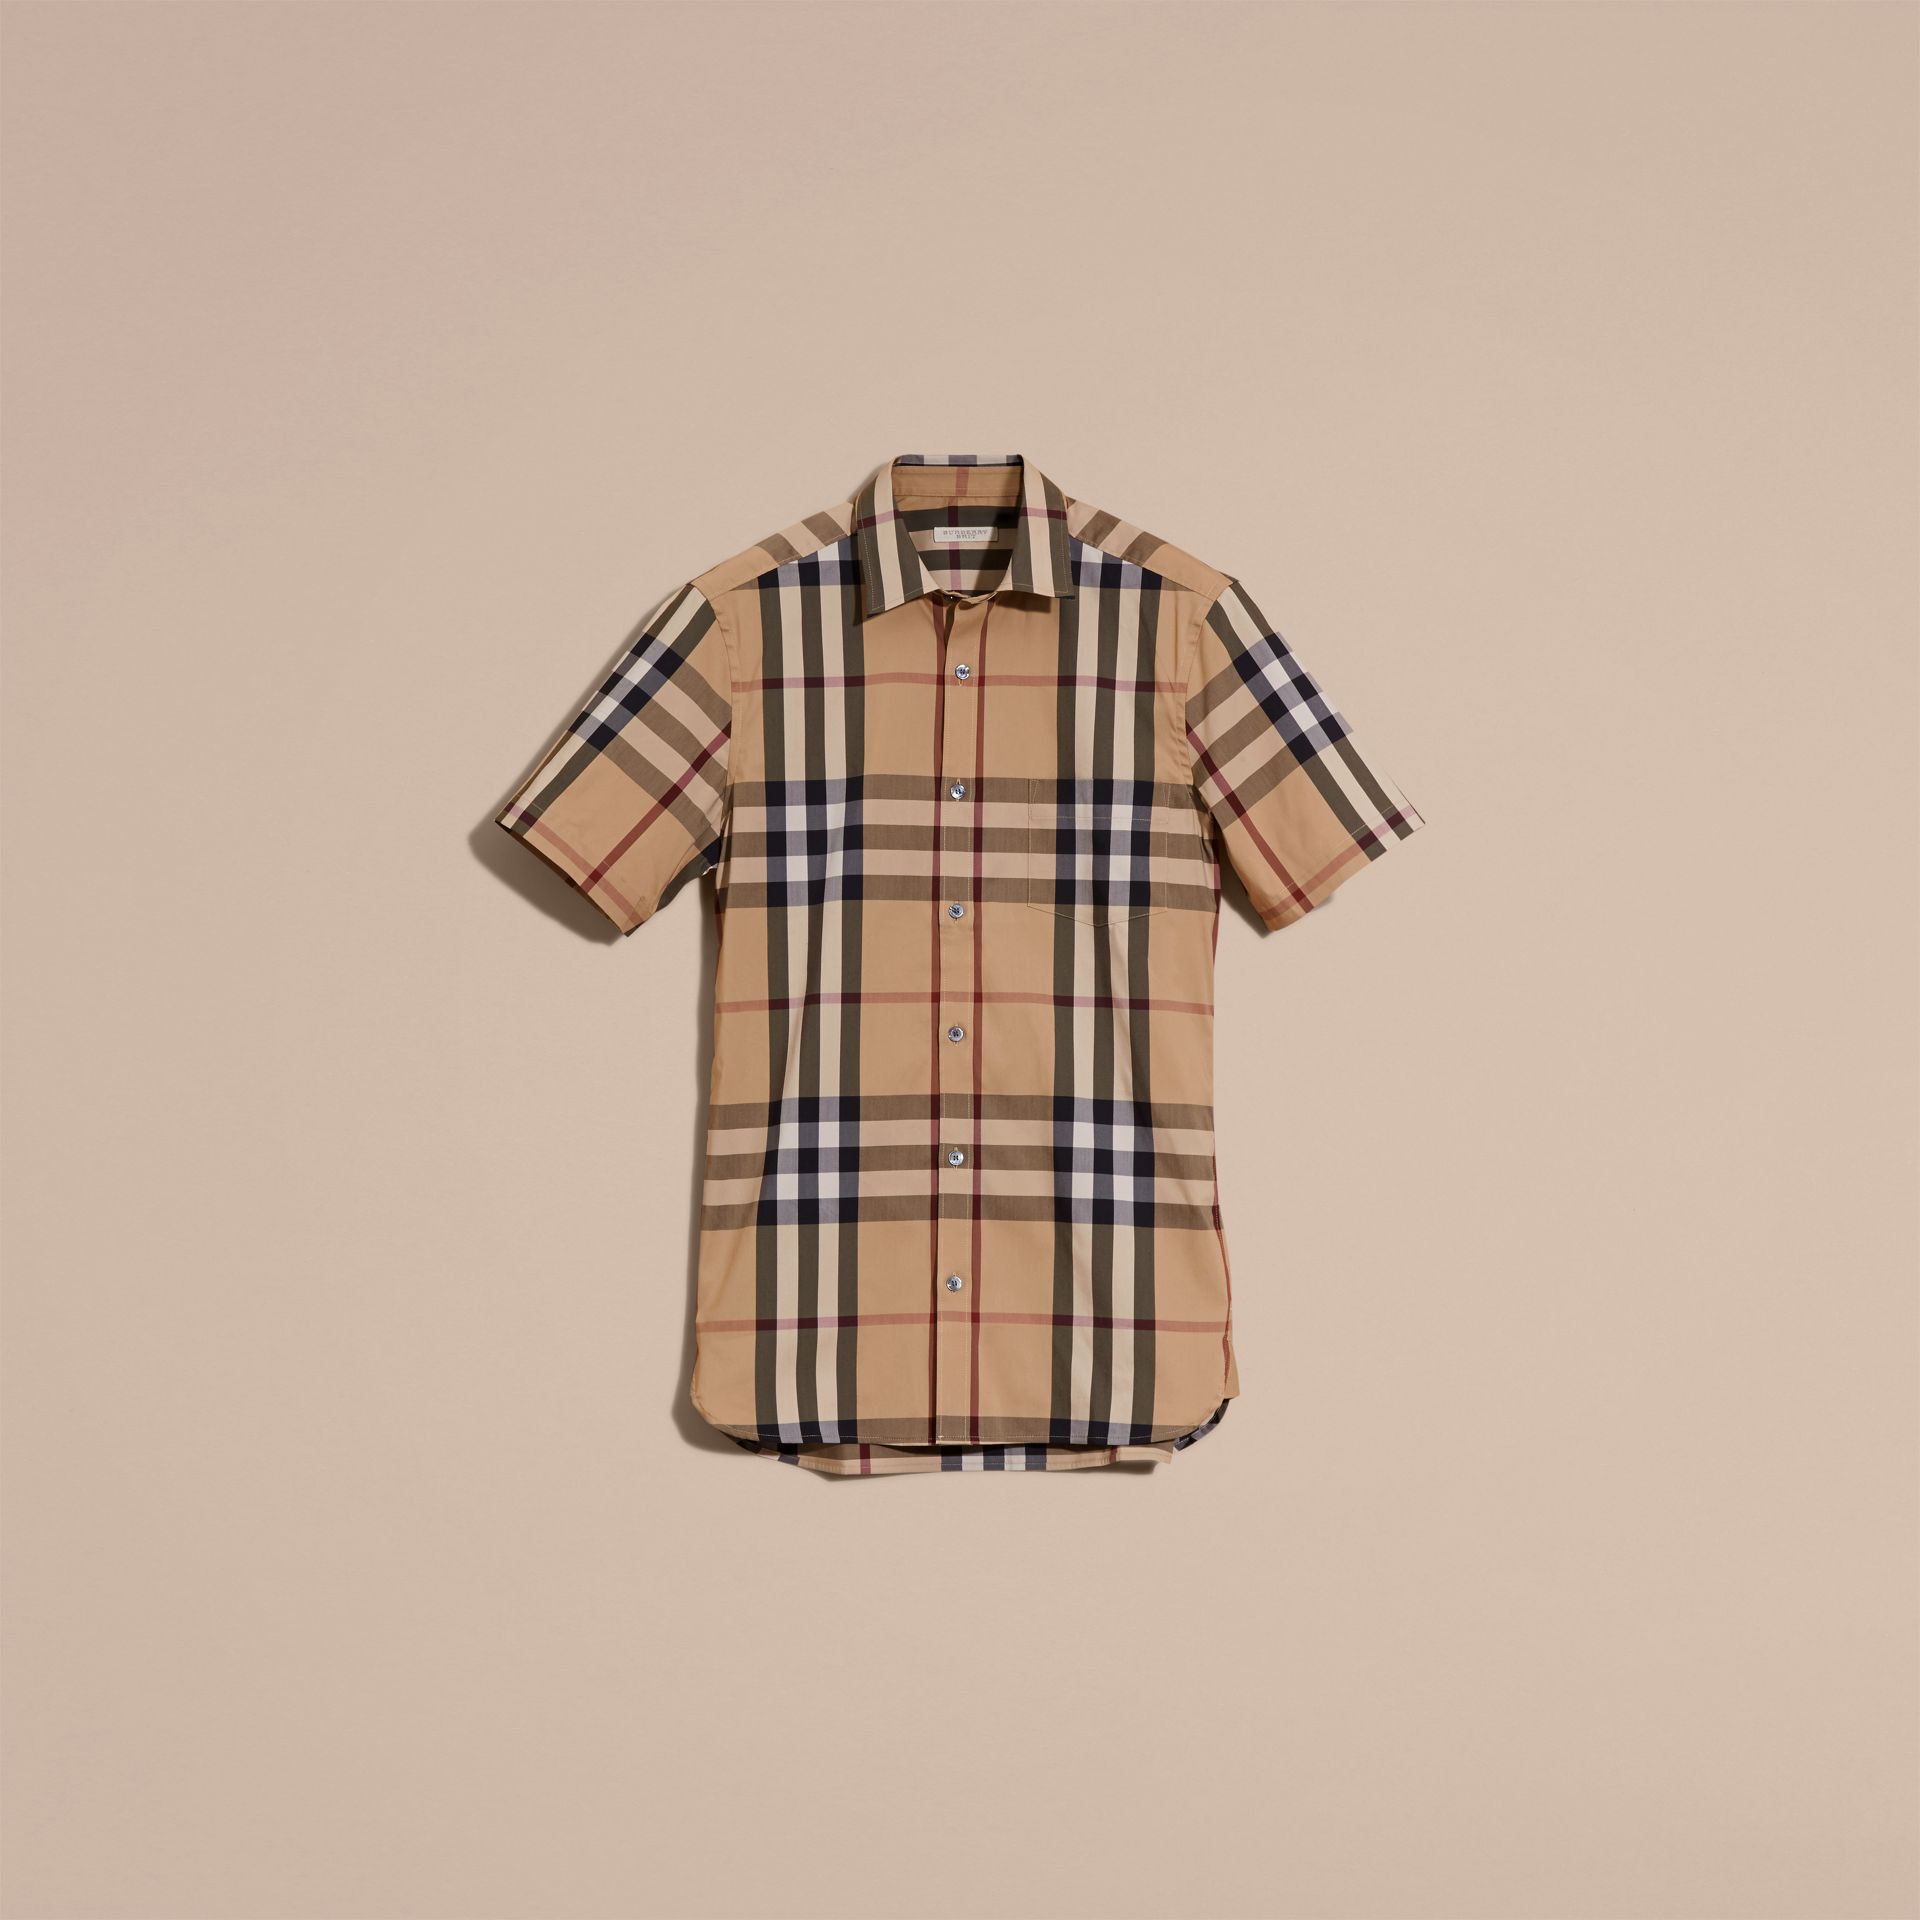 Camel Short-sleeved Check Stretch Cotton Shirt Camel - gallery image 4